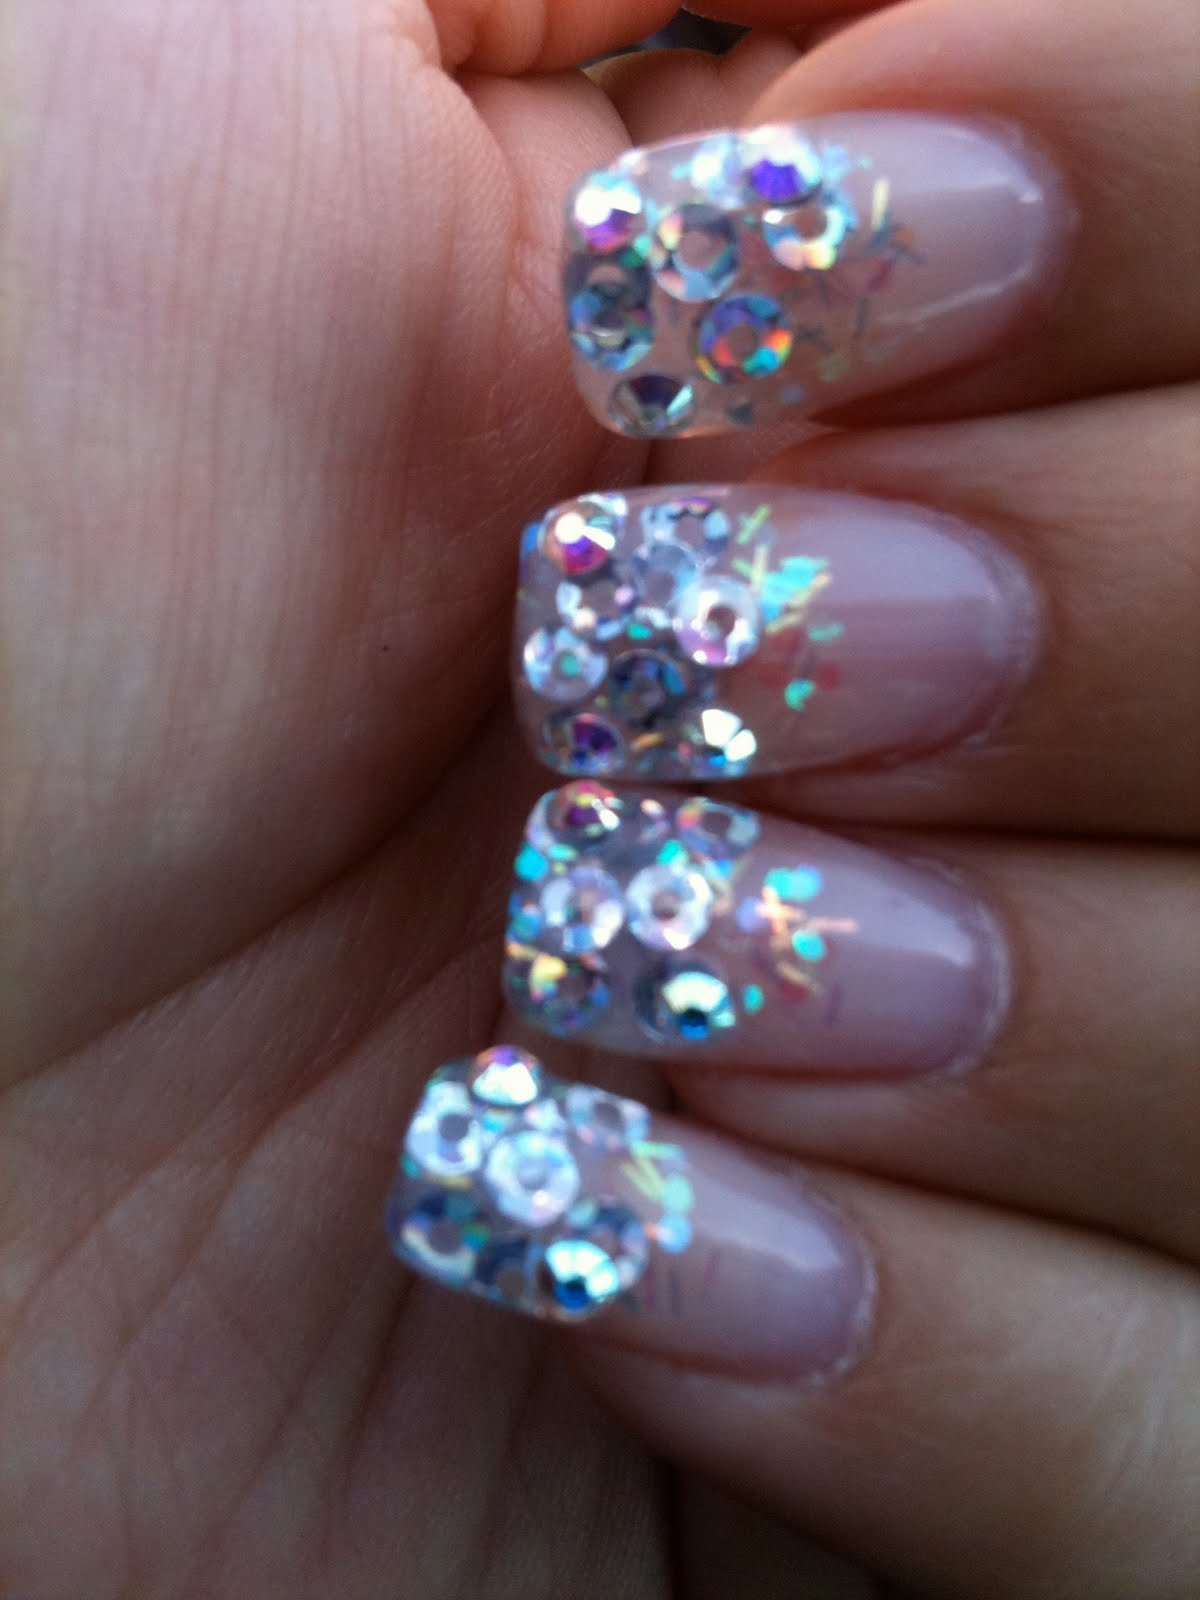 Acrylic Nails With Glitter Tips | www.imgkid.com - The ...